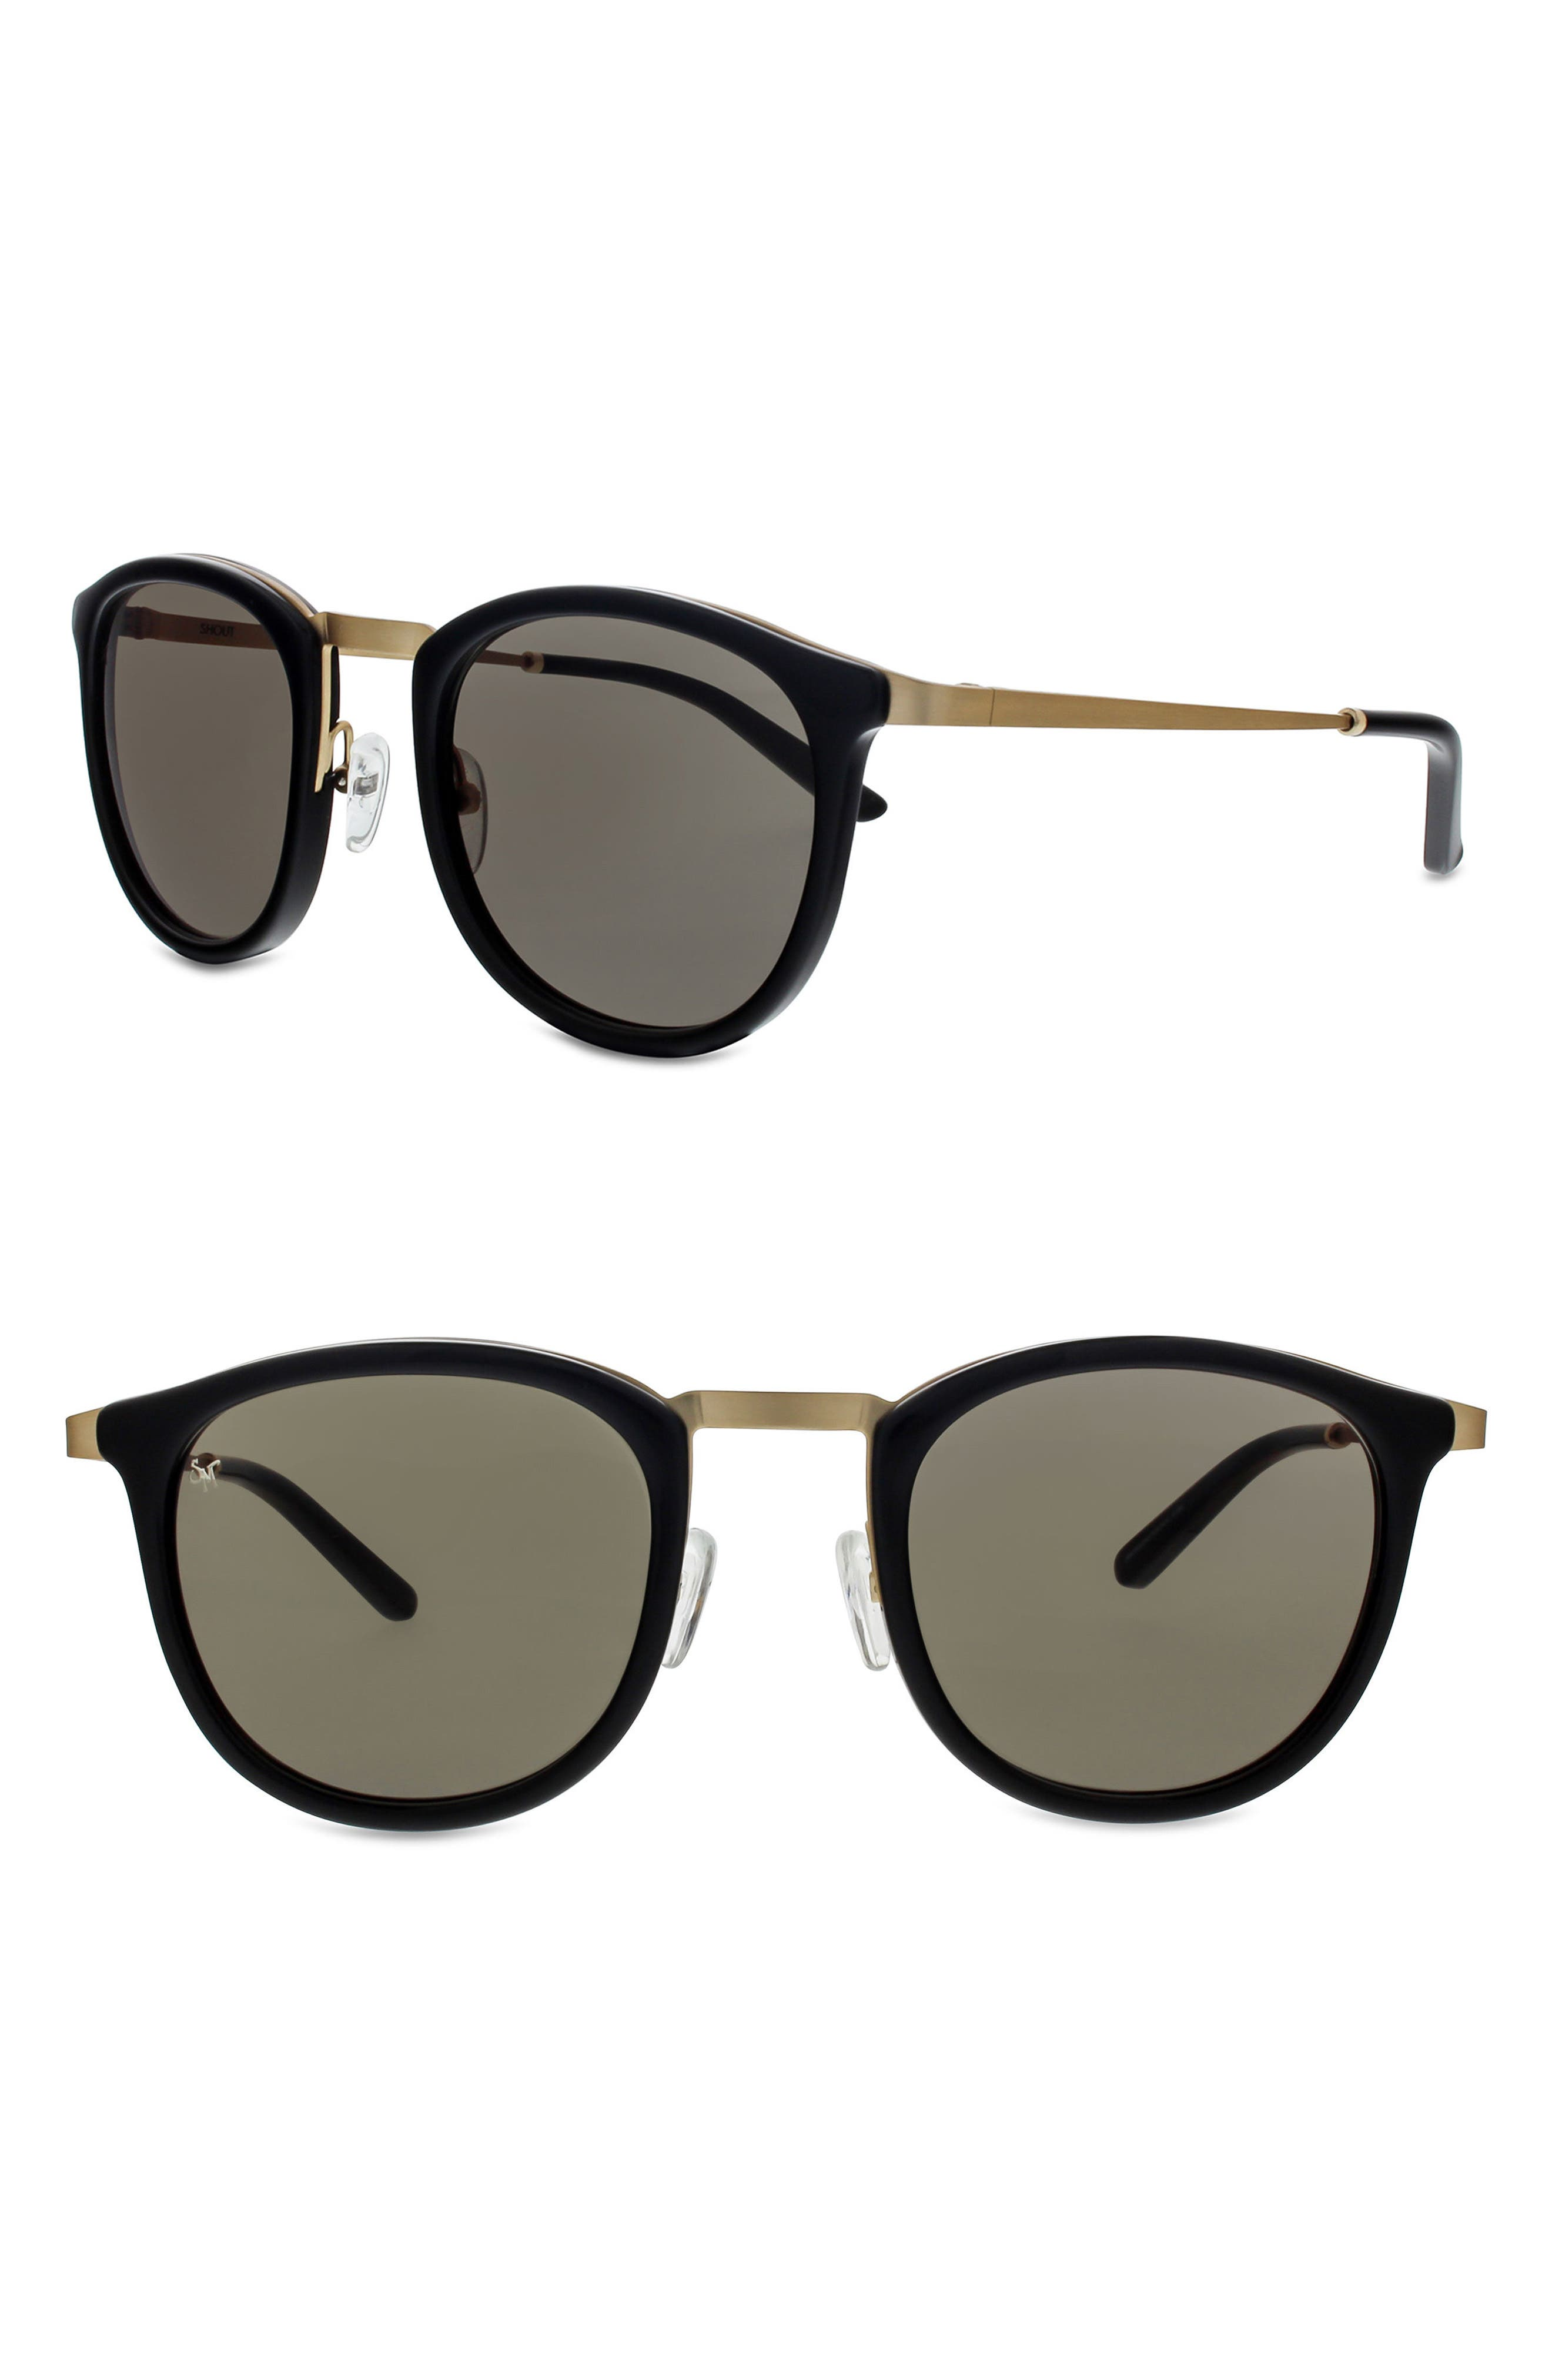 Shout 49mm Retro Sunglasses,                         Main,                         color, Black/ Brushed Gold